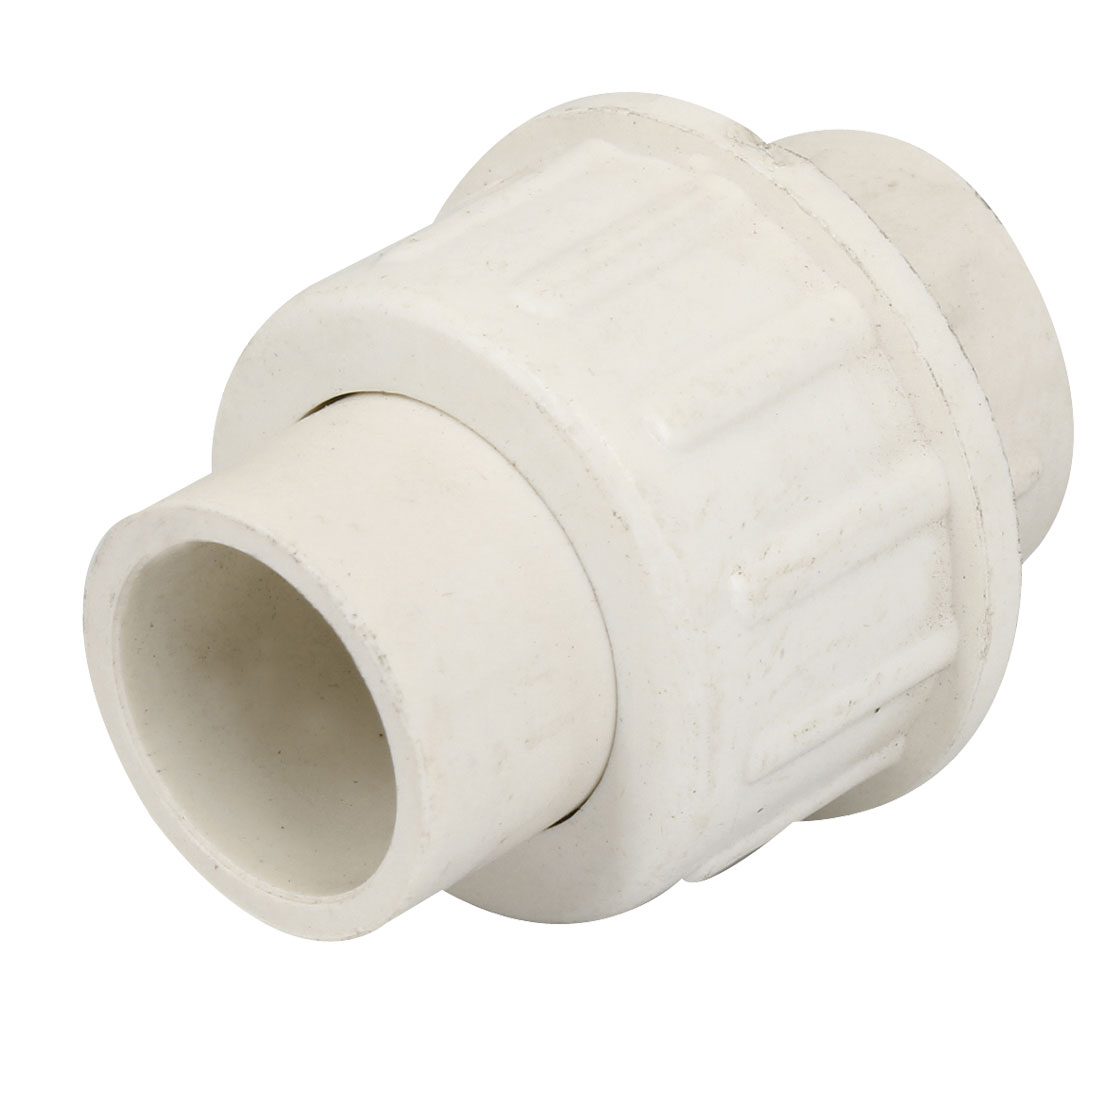 20mm Inner Diameter Male Adapter PVC Pipe Fitting Straight Connector White